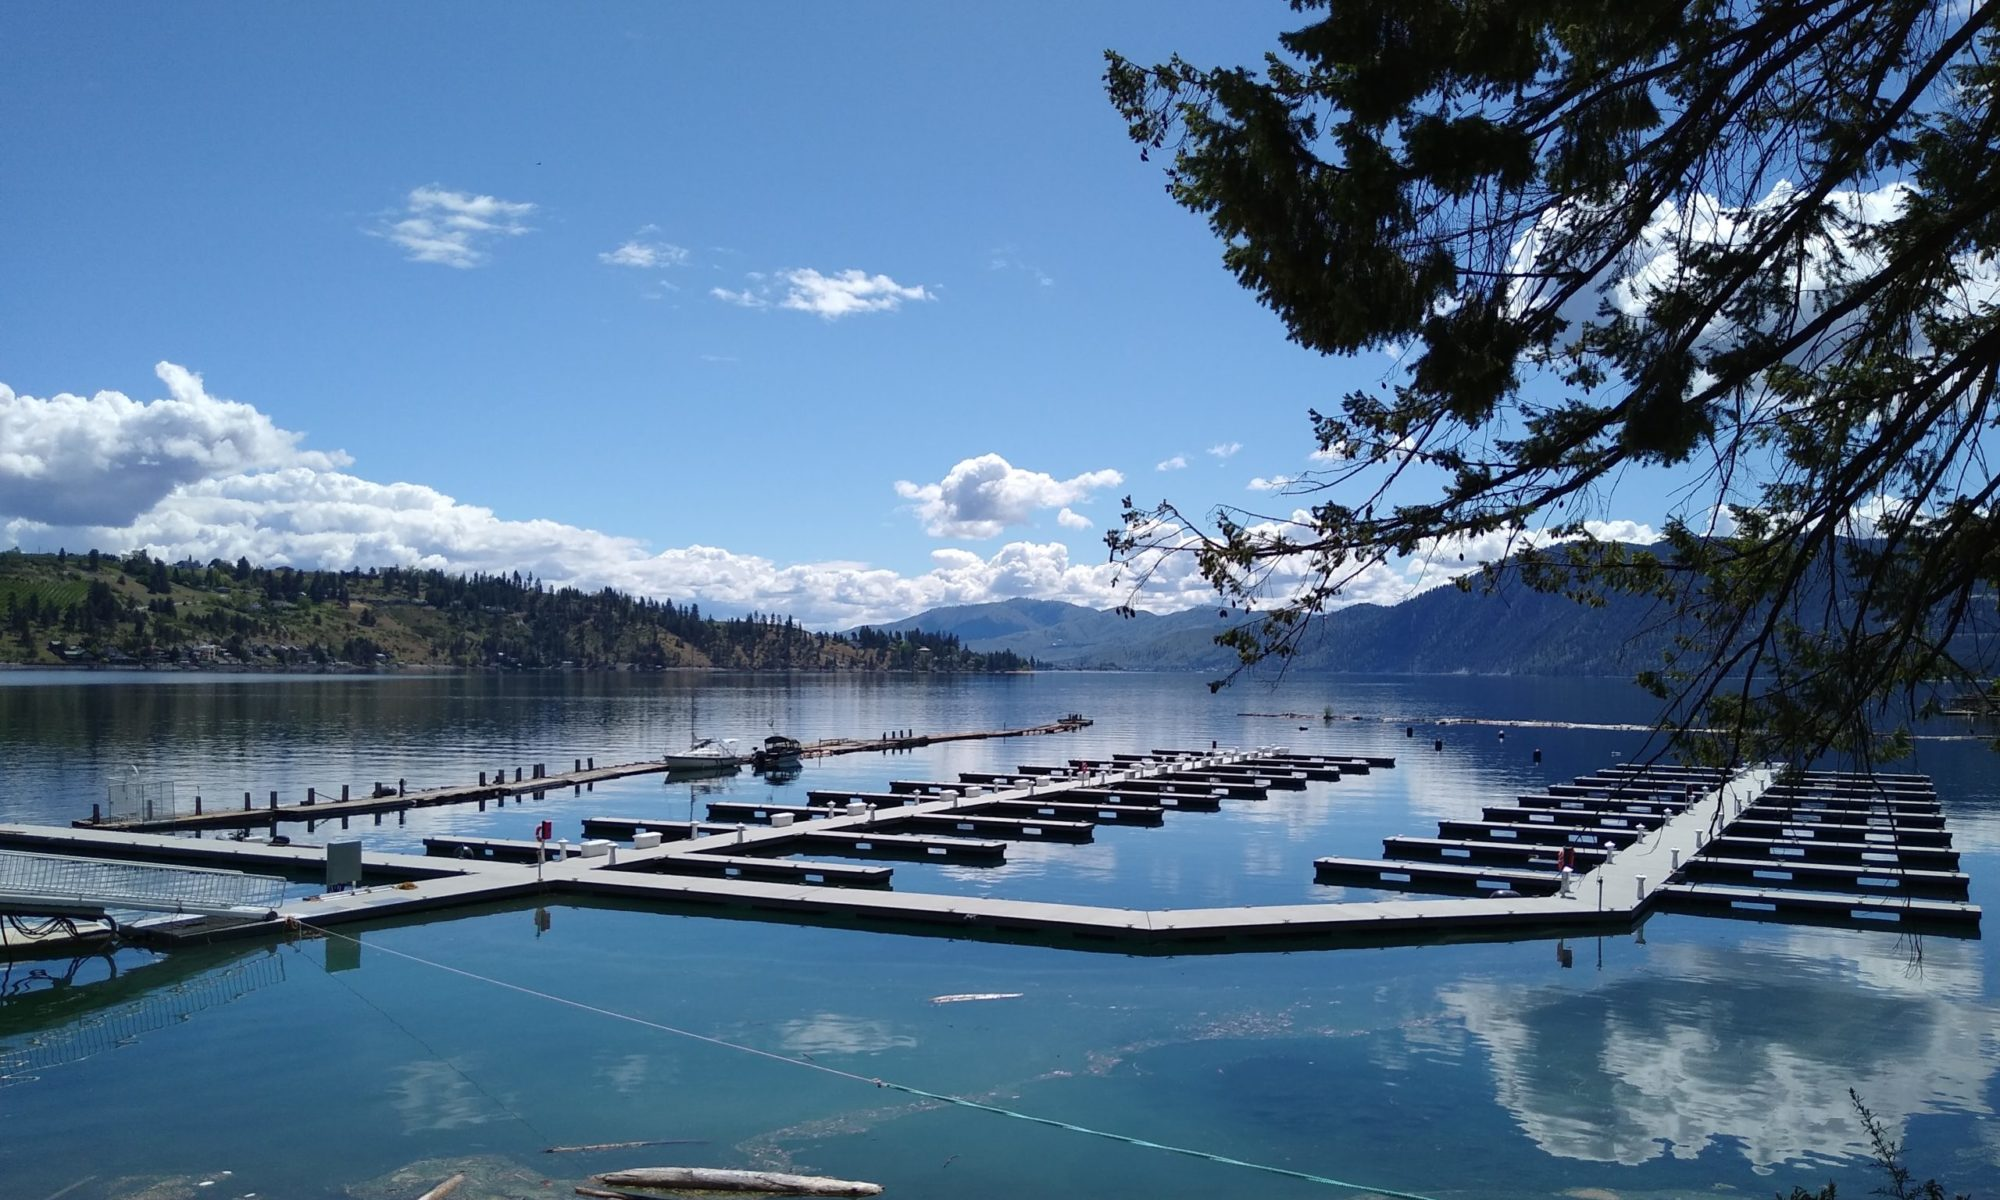 Lake Chelan Cove Marina